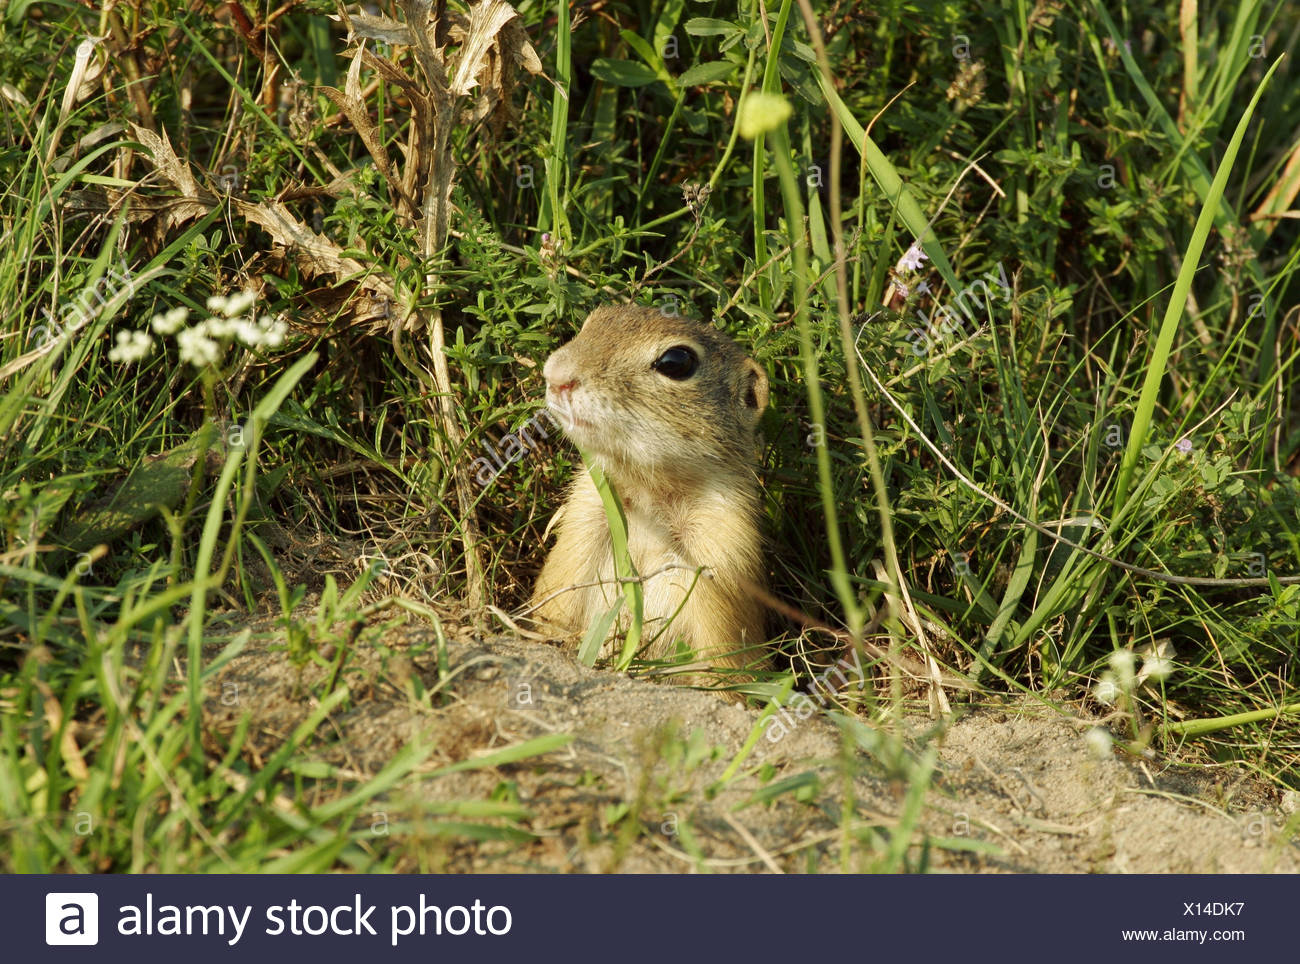 zoology / animals, mammal / mammalian, Sciuridae, European ground squirrel (Spermophilus citellus), looking out of den, Neusiedler See, Austria, distribution: Europe, Additional-Rights-Clearance-Info-Not-Available - Stock Image